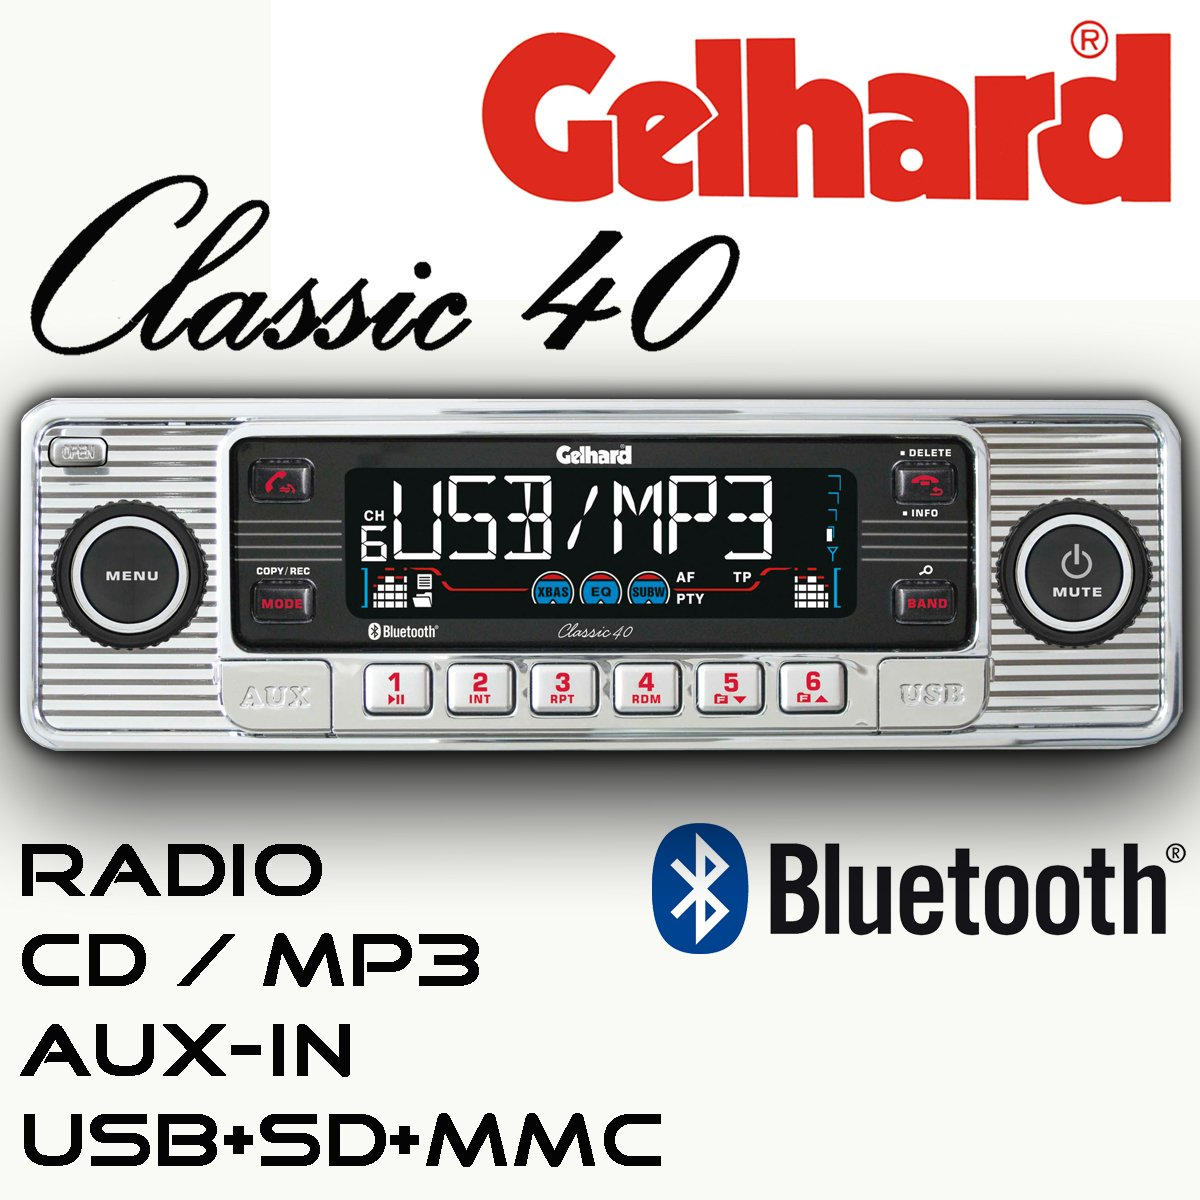 Gelhard Classic 40 'Retro Look' RDS Autoradio CD MP3 USB SD + Bluetooth Freisprecheinrichtung